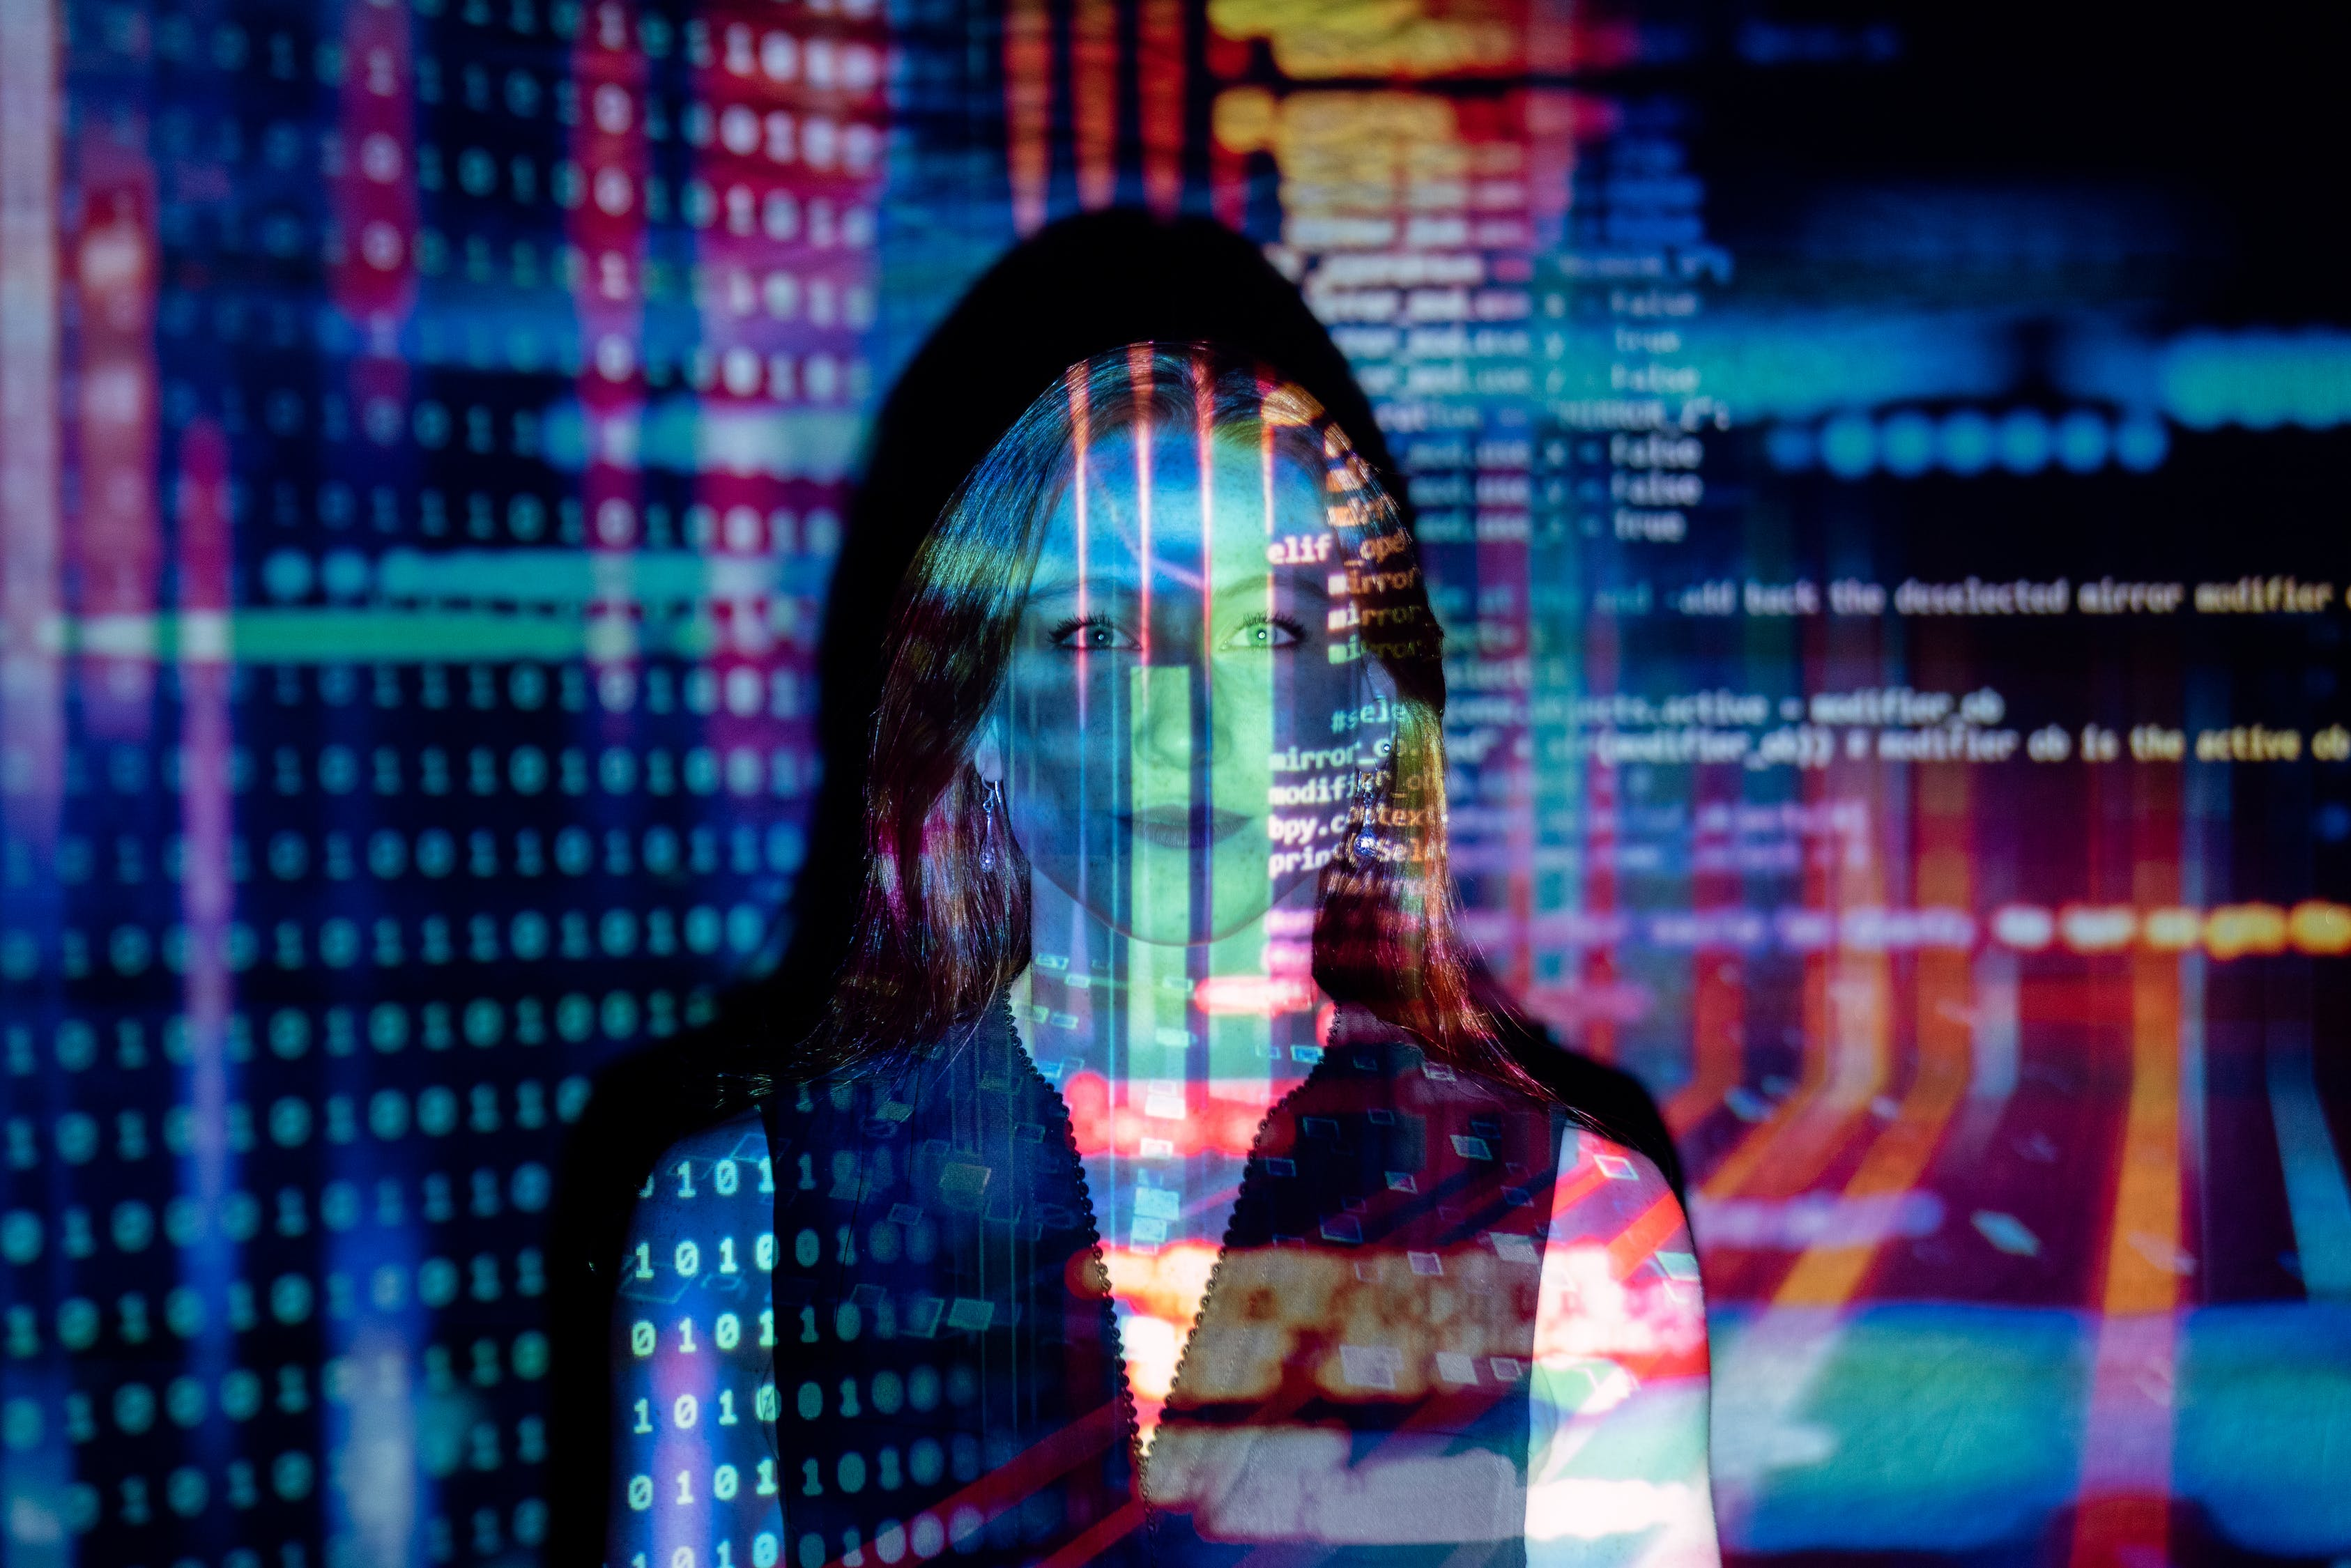 Code-Projected-Over-Woman